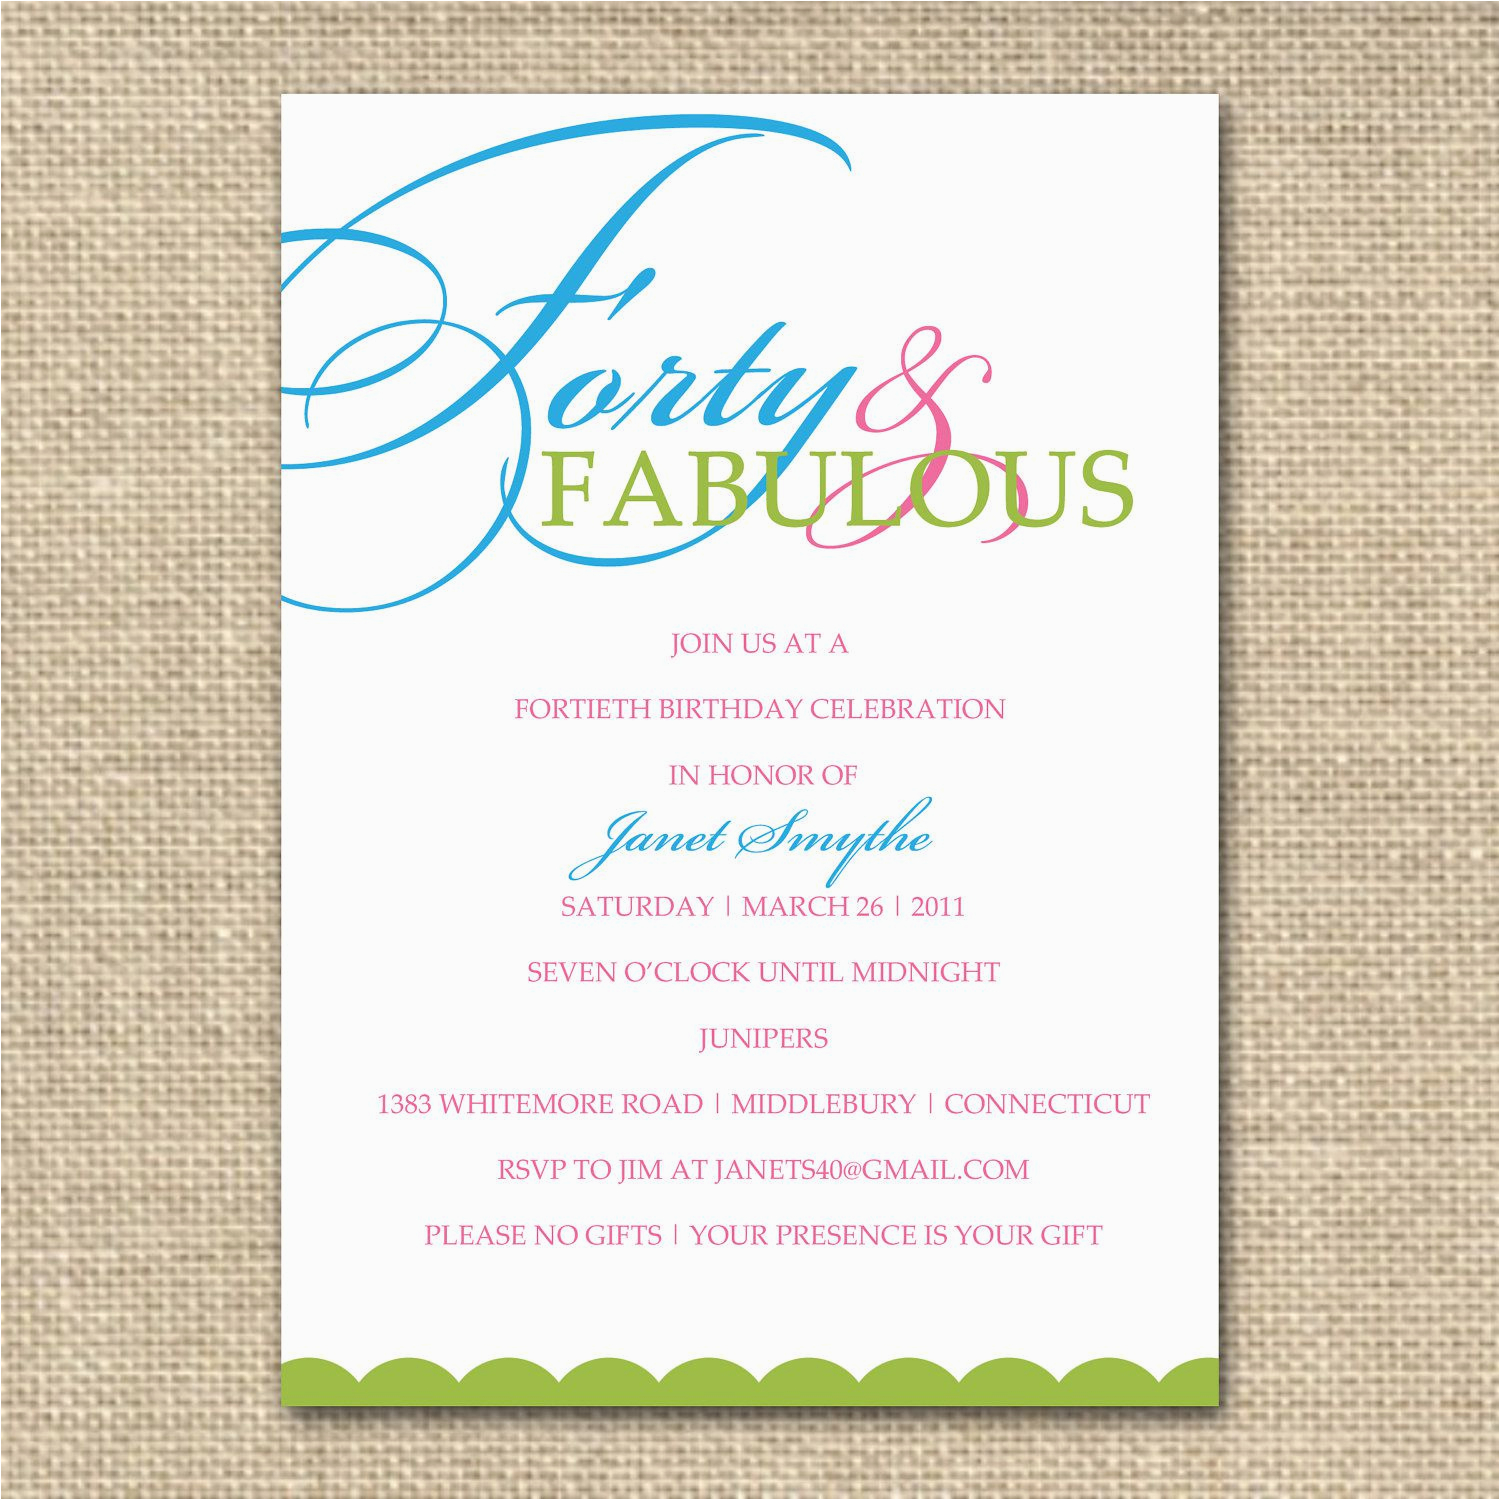 Birthday Party Invite Wording Adults Invitation Card